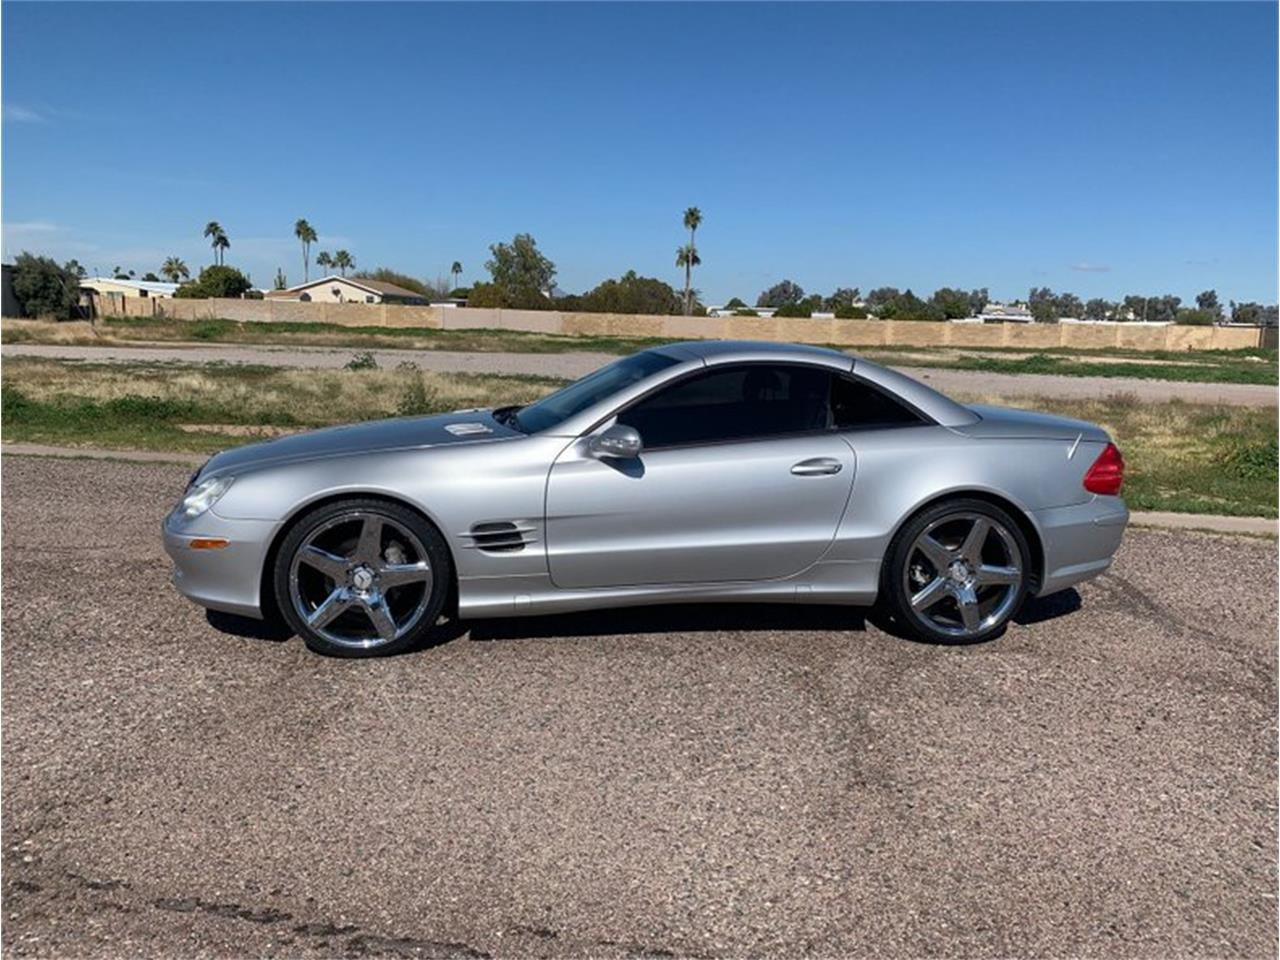 2003 Mercedes-Benz SL500 (CC-1321899) for sale in Punta Gorda, Florida